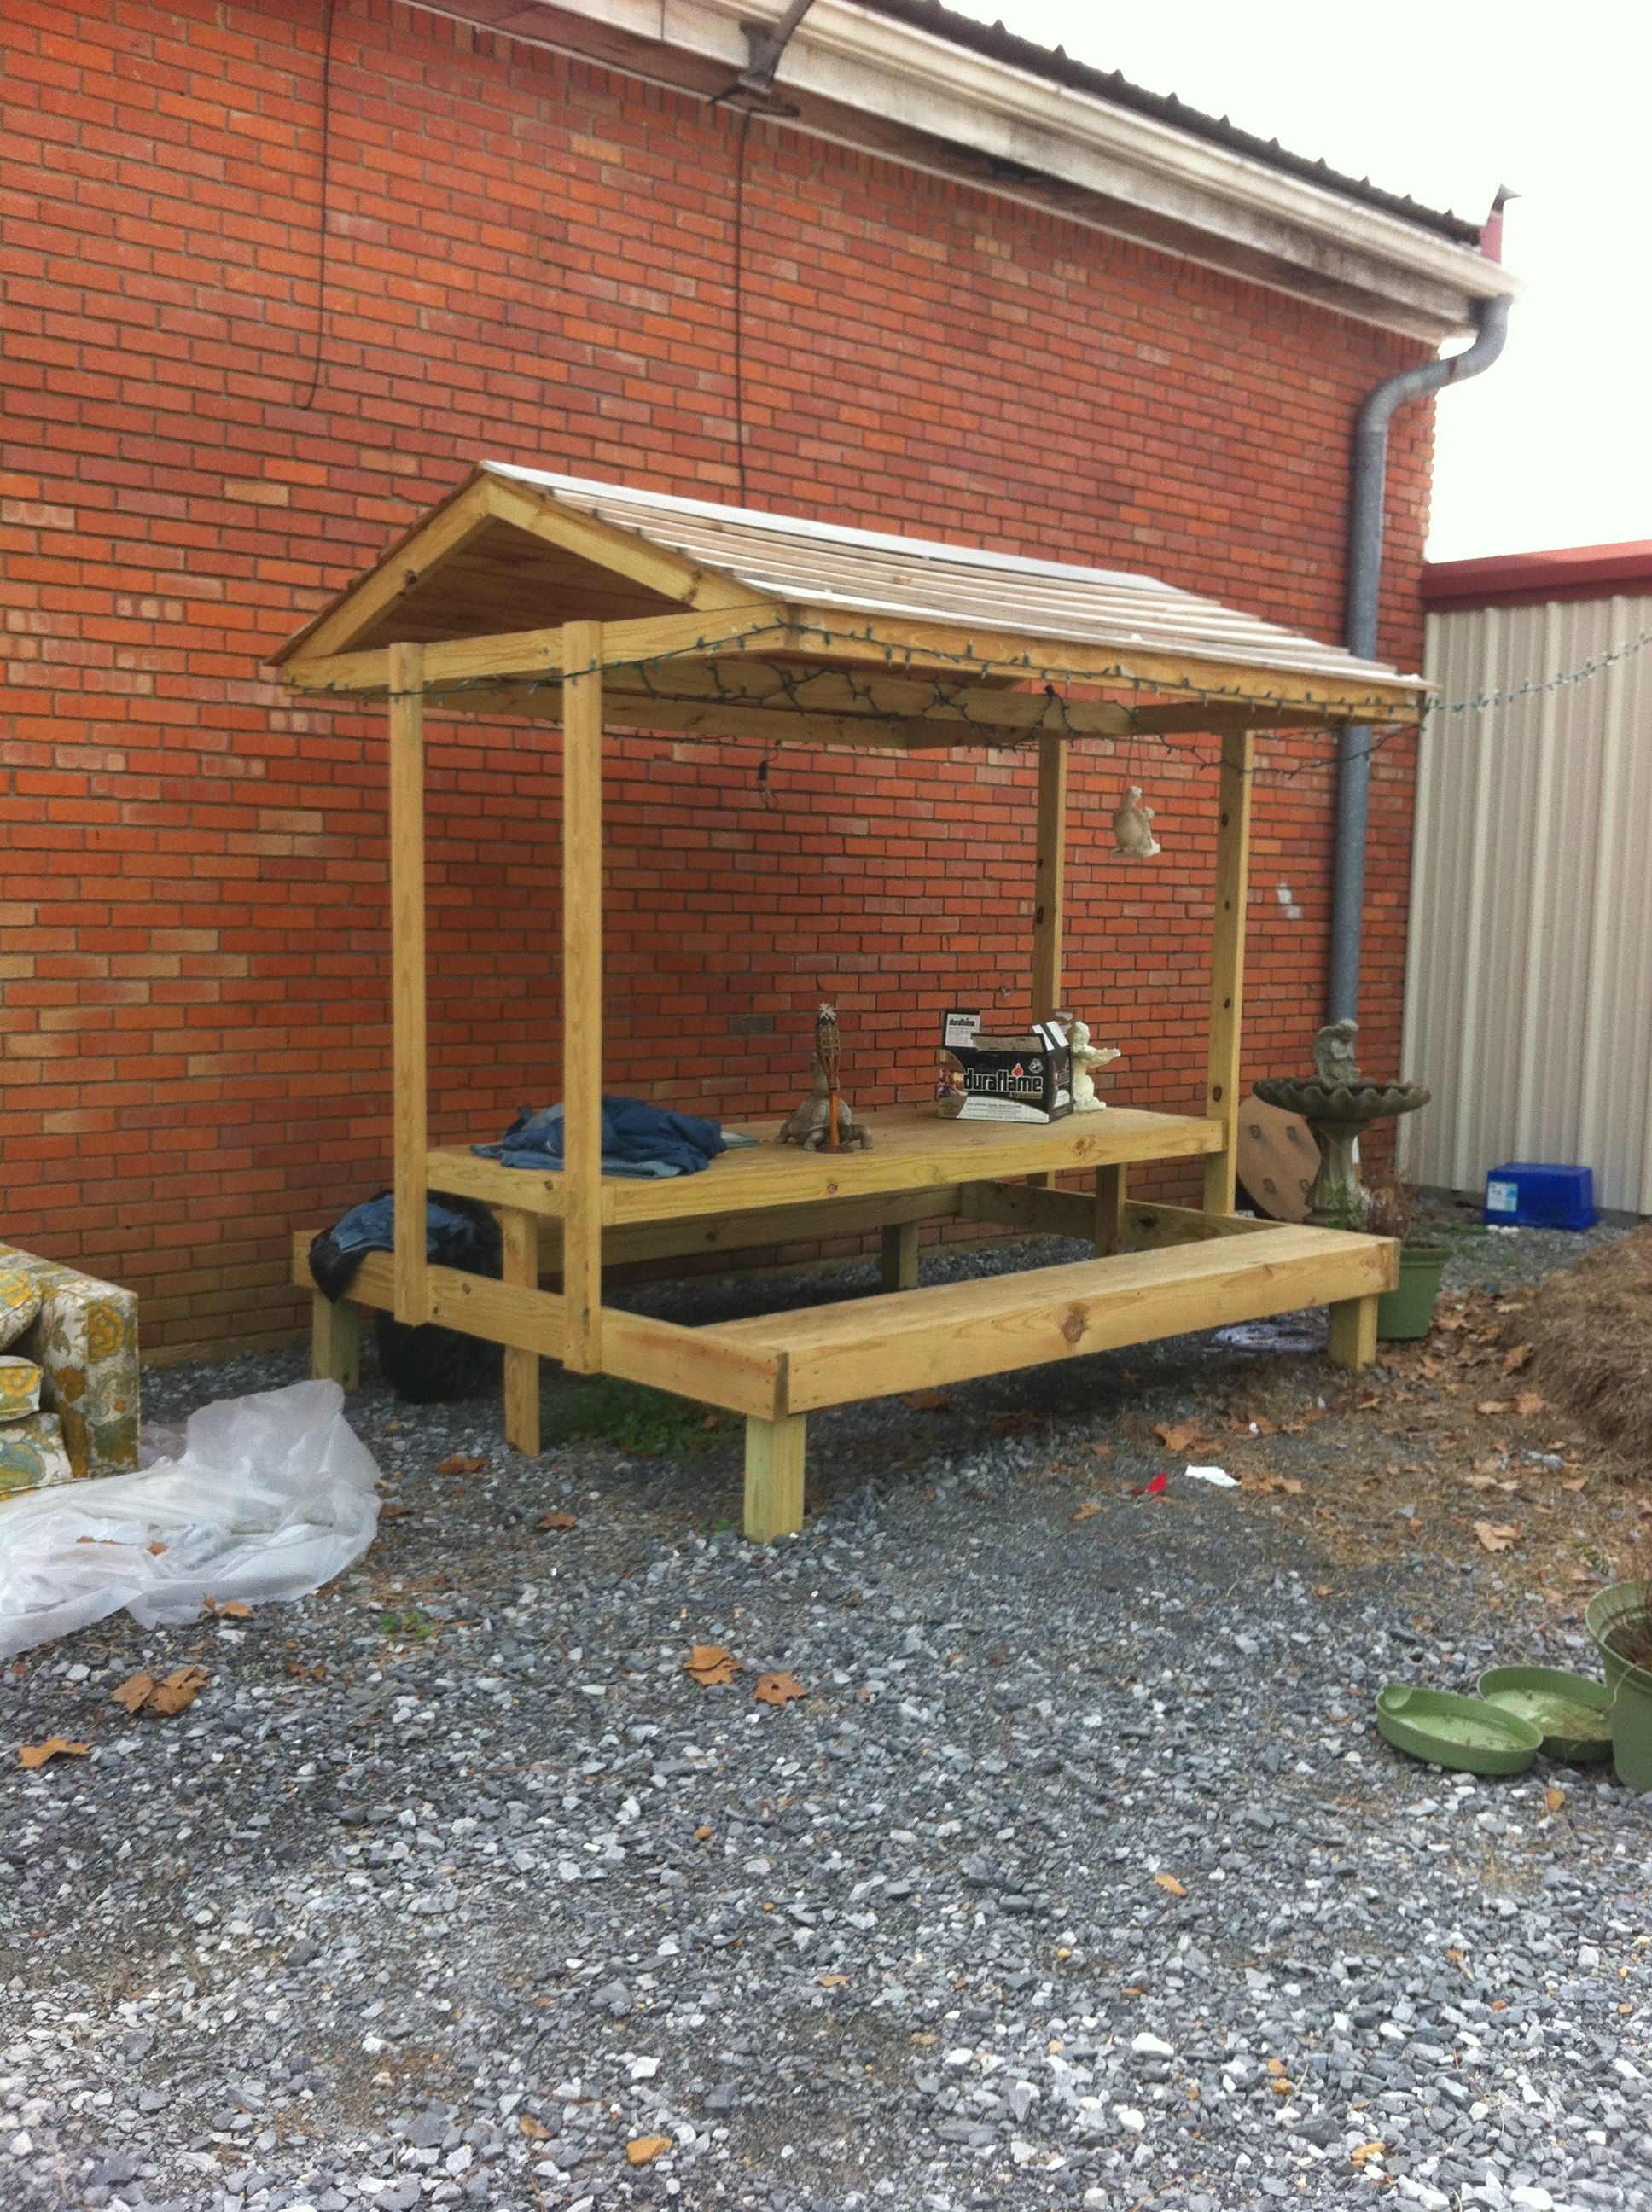 Covered Picnic Table Cool Stuff For Him To Build Picnic Table Cool Tables Ve Picnic